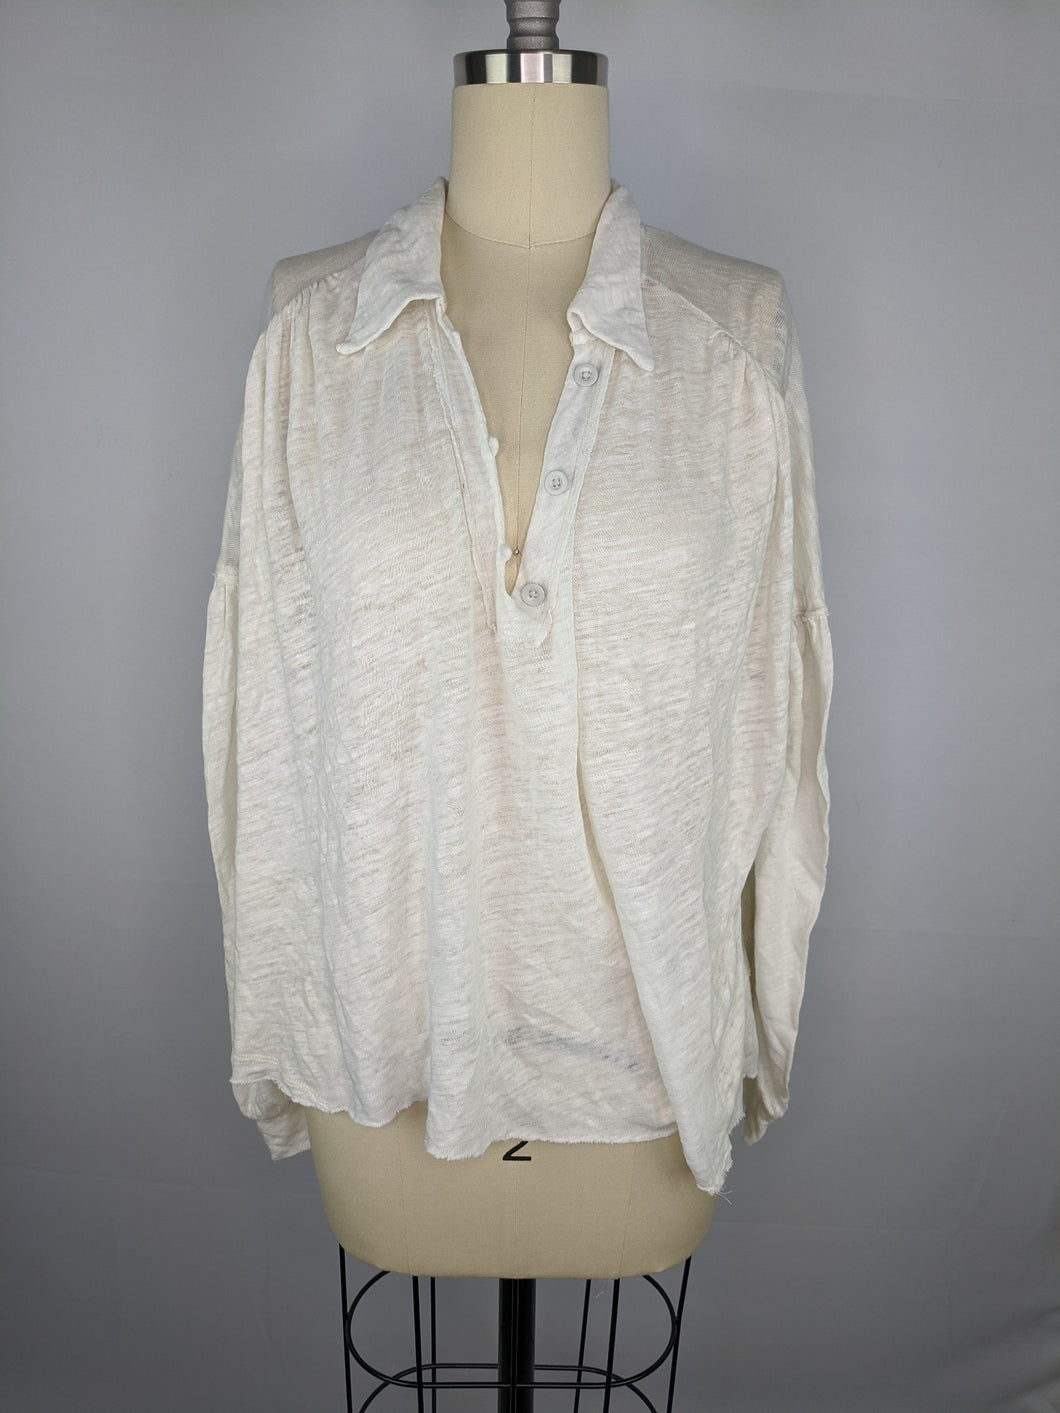 Free People Womens Rush Hour Collared Long Sleeve Top M Ivory Off White NWT $68